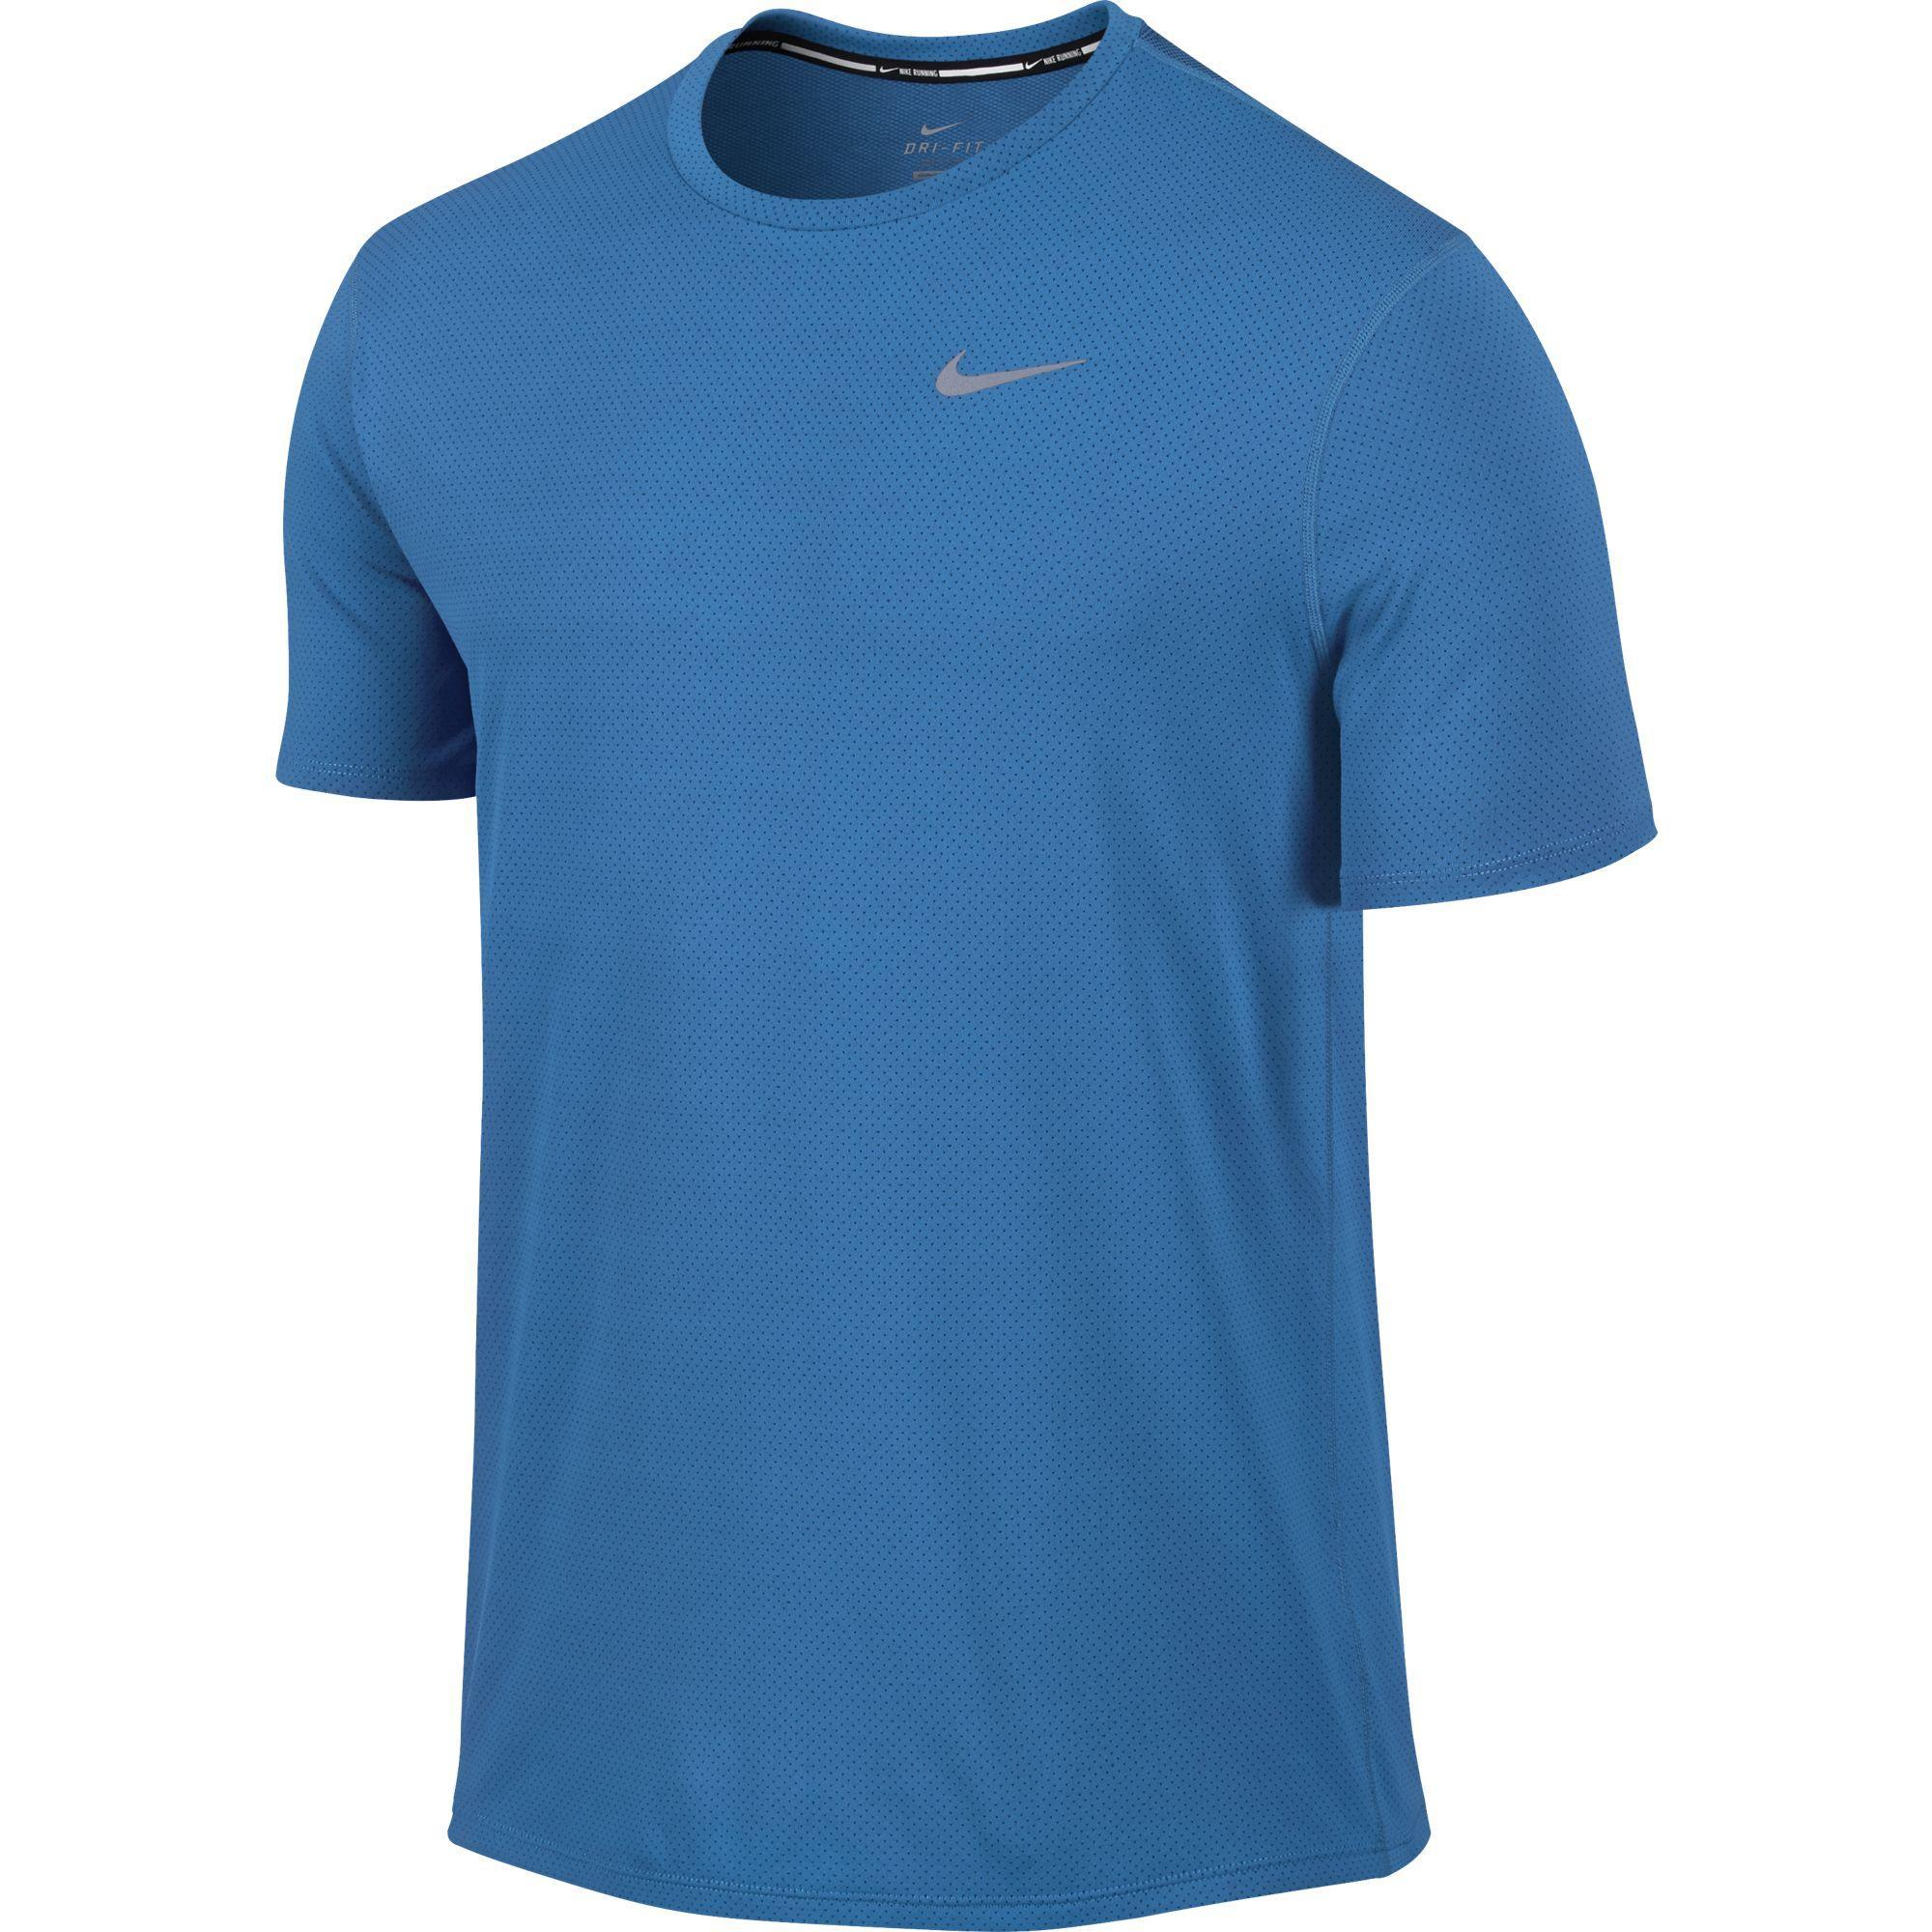 robe de mari e yves saint laurent - Nike Dri-FIT Contour Short Sleeve - Fleet Feet Sports